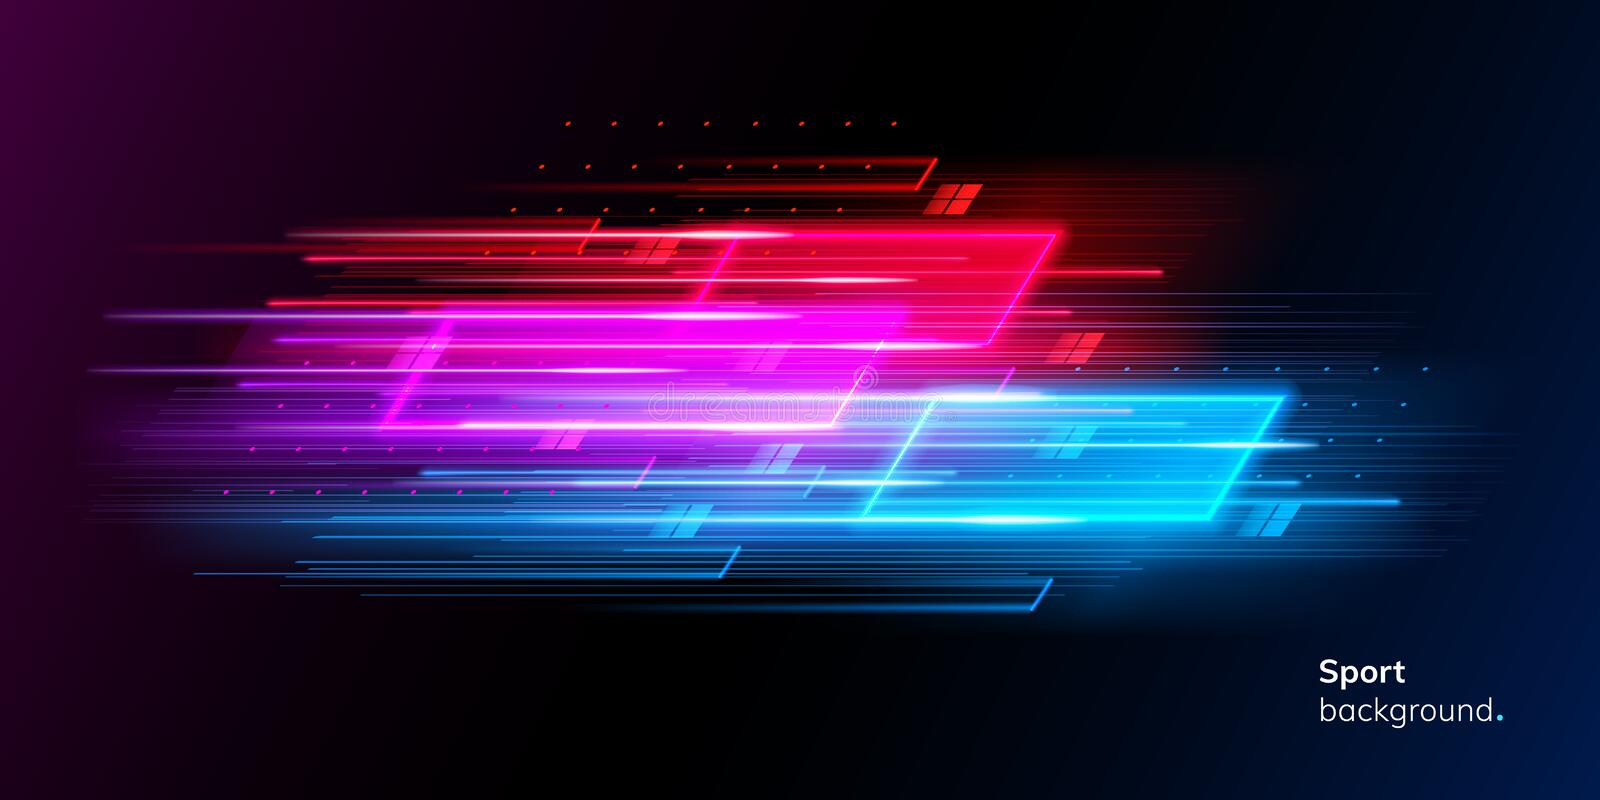 Modern abstract neon sport background or collage stock illustration